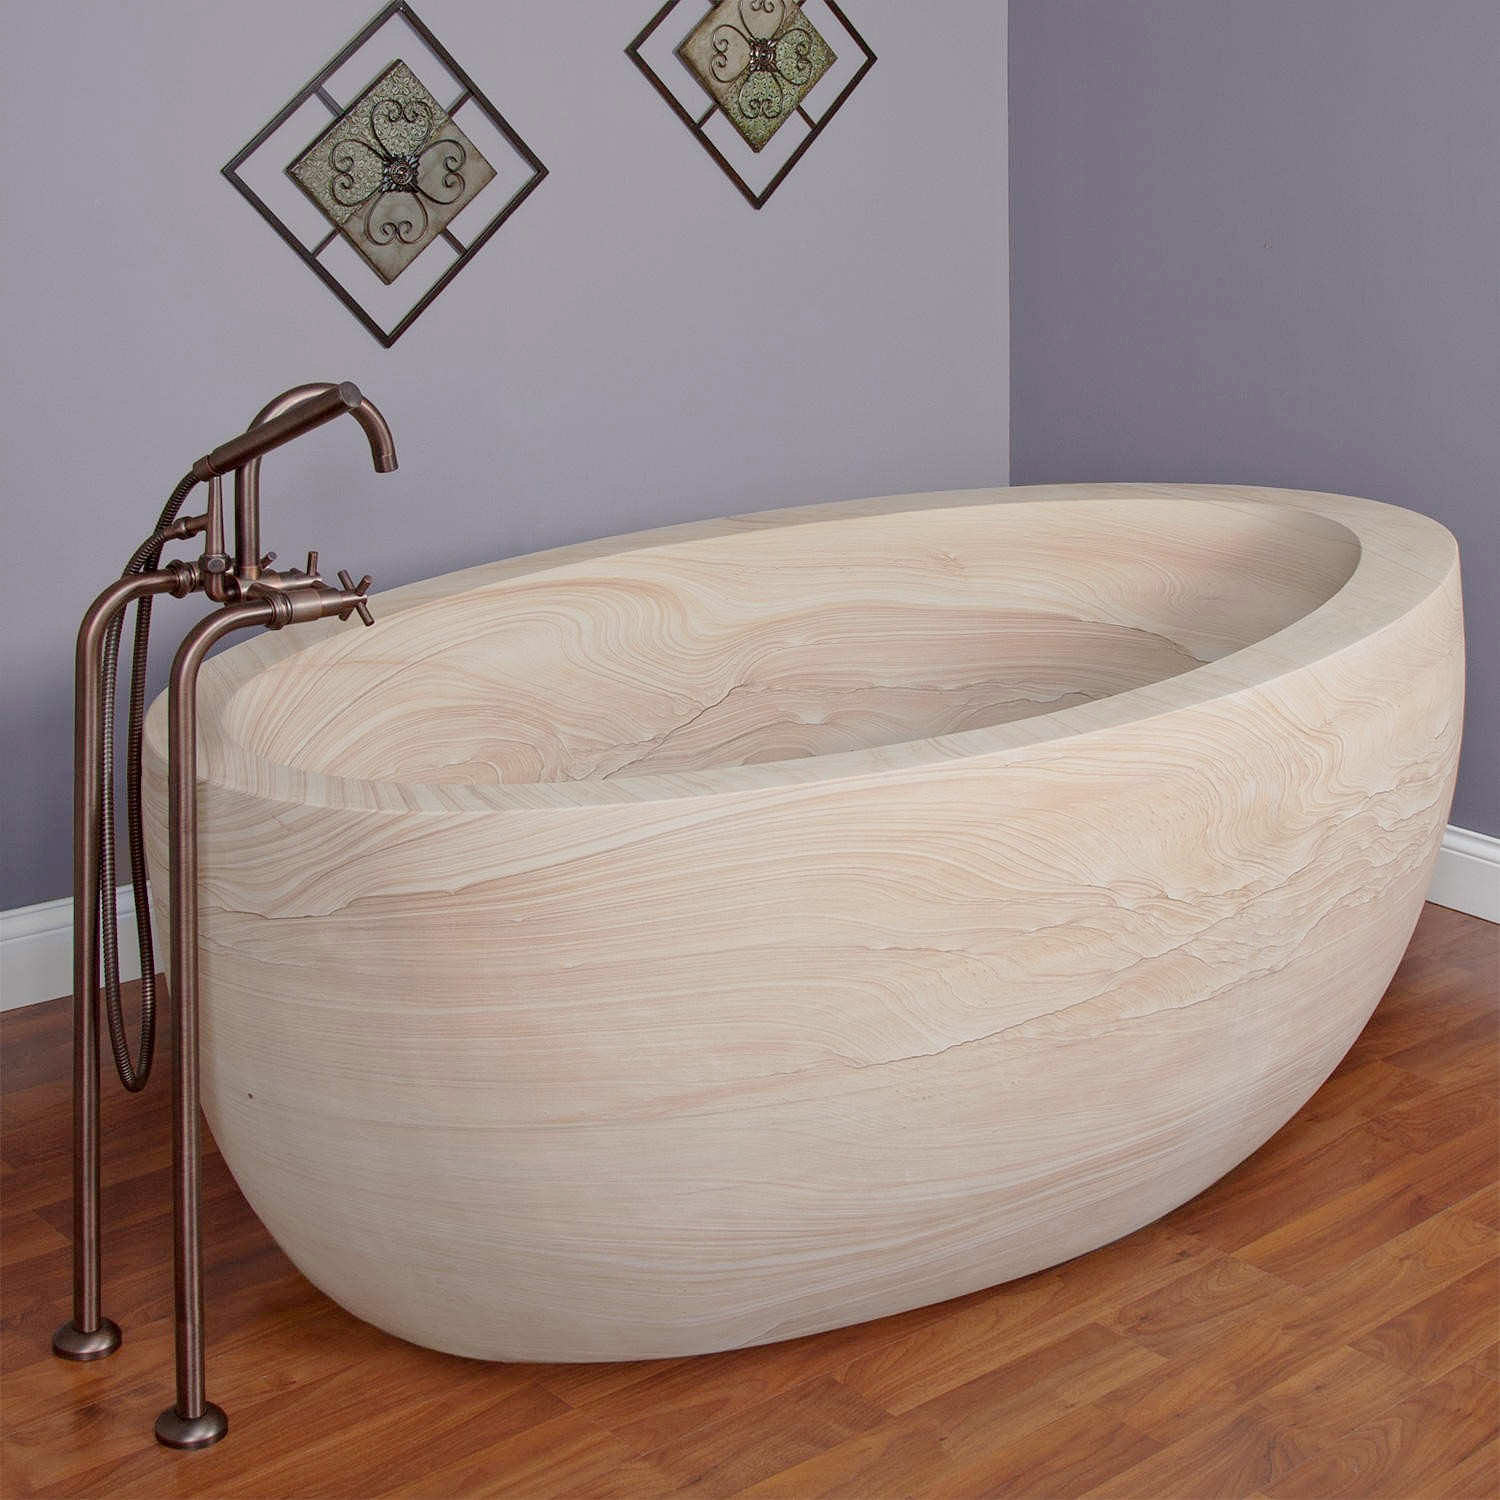 White sandstone slipper tub